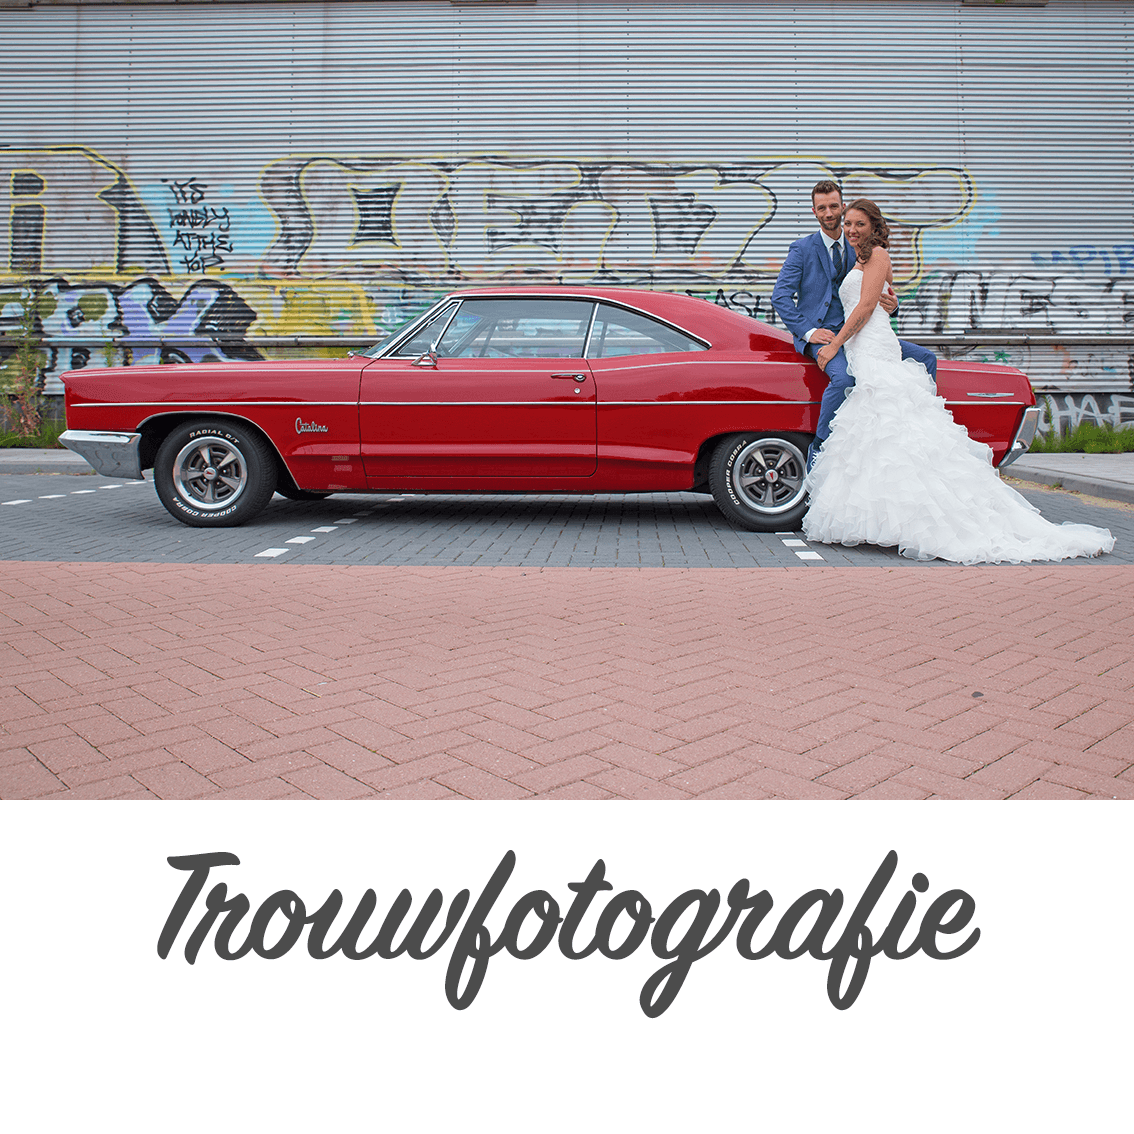 Moments of Memory Fotografie - Trouwfotografie